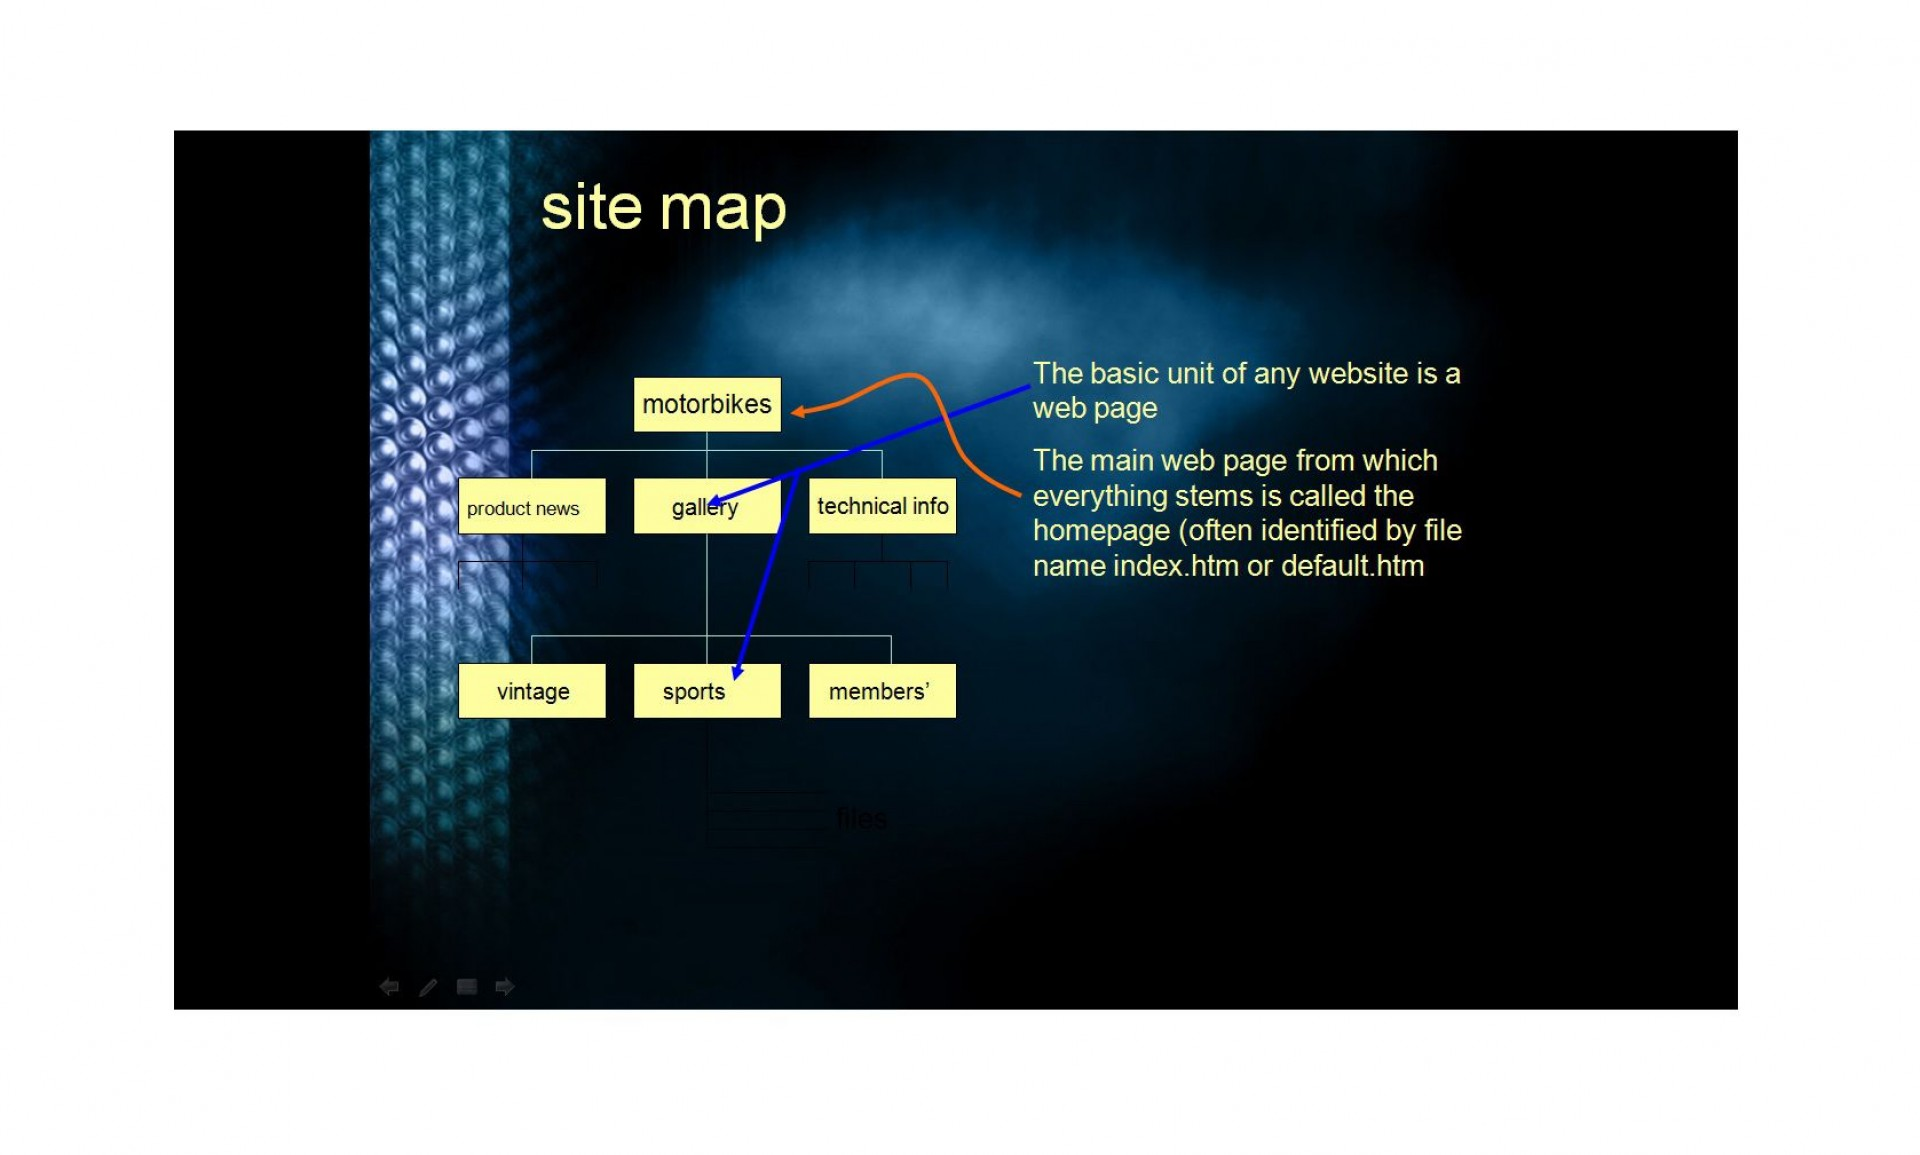 007 Excellent Website Site Map Template Free Excel Sample 1920